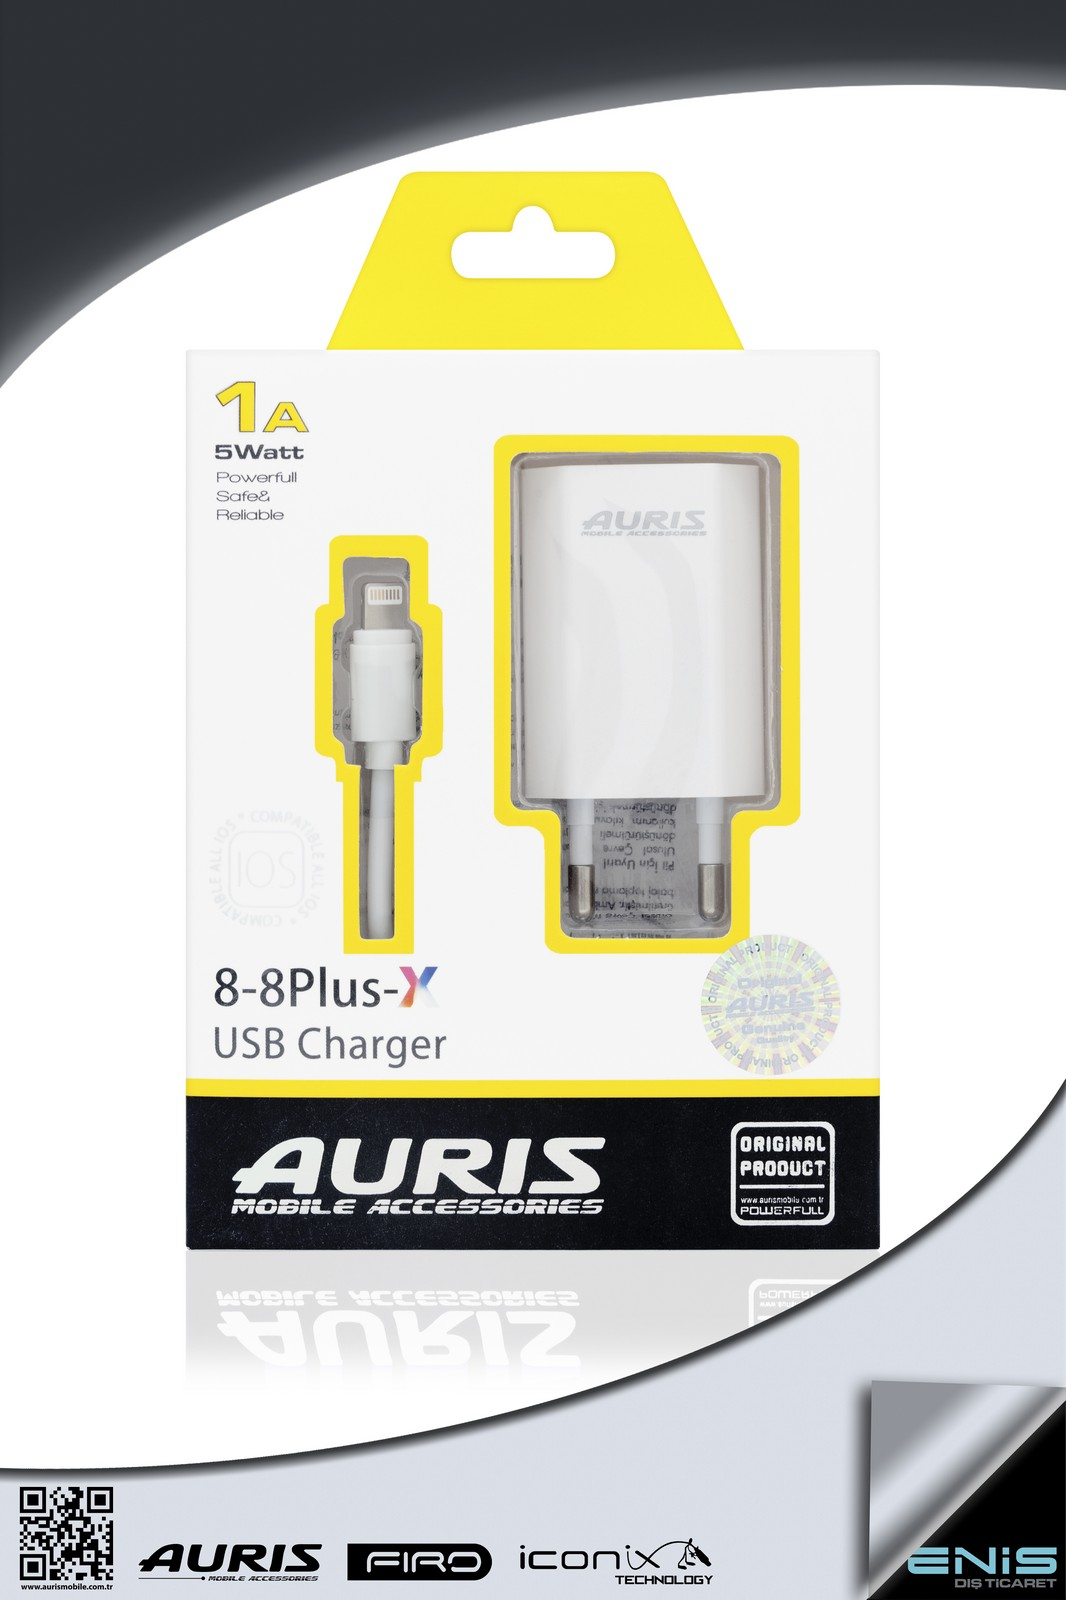 8-8PLUS-X USB CHARGER 1A